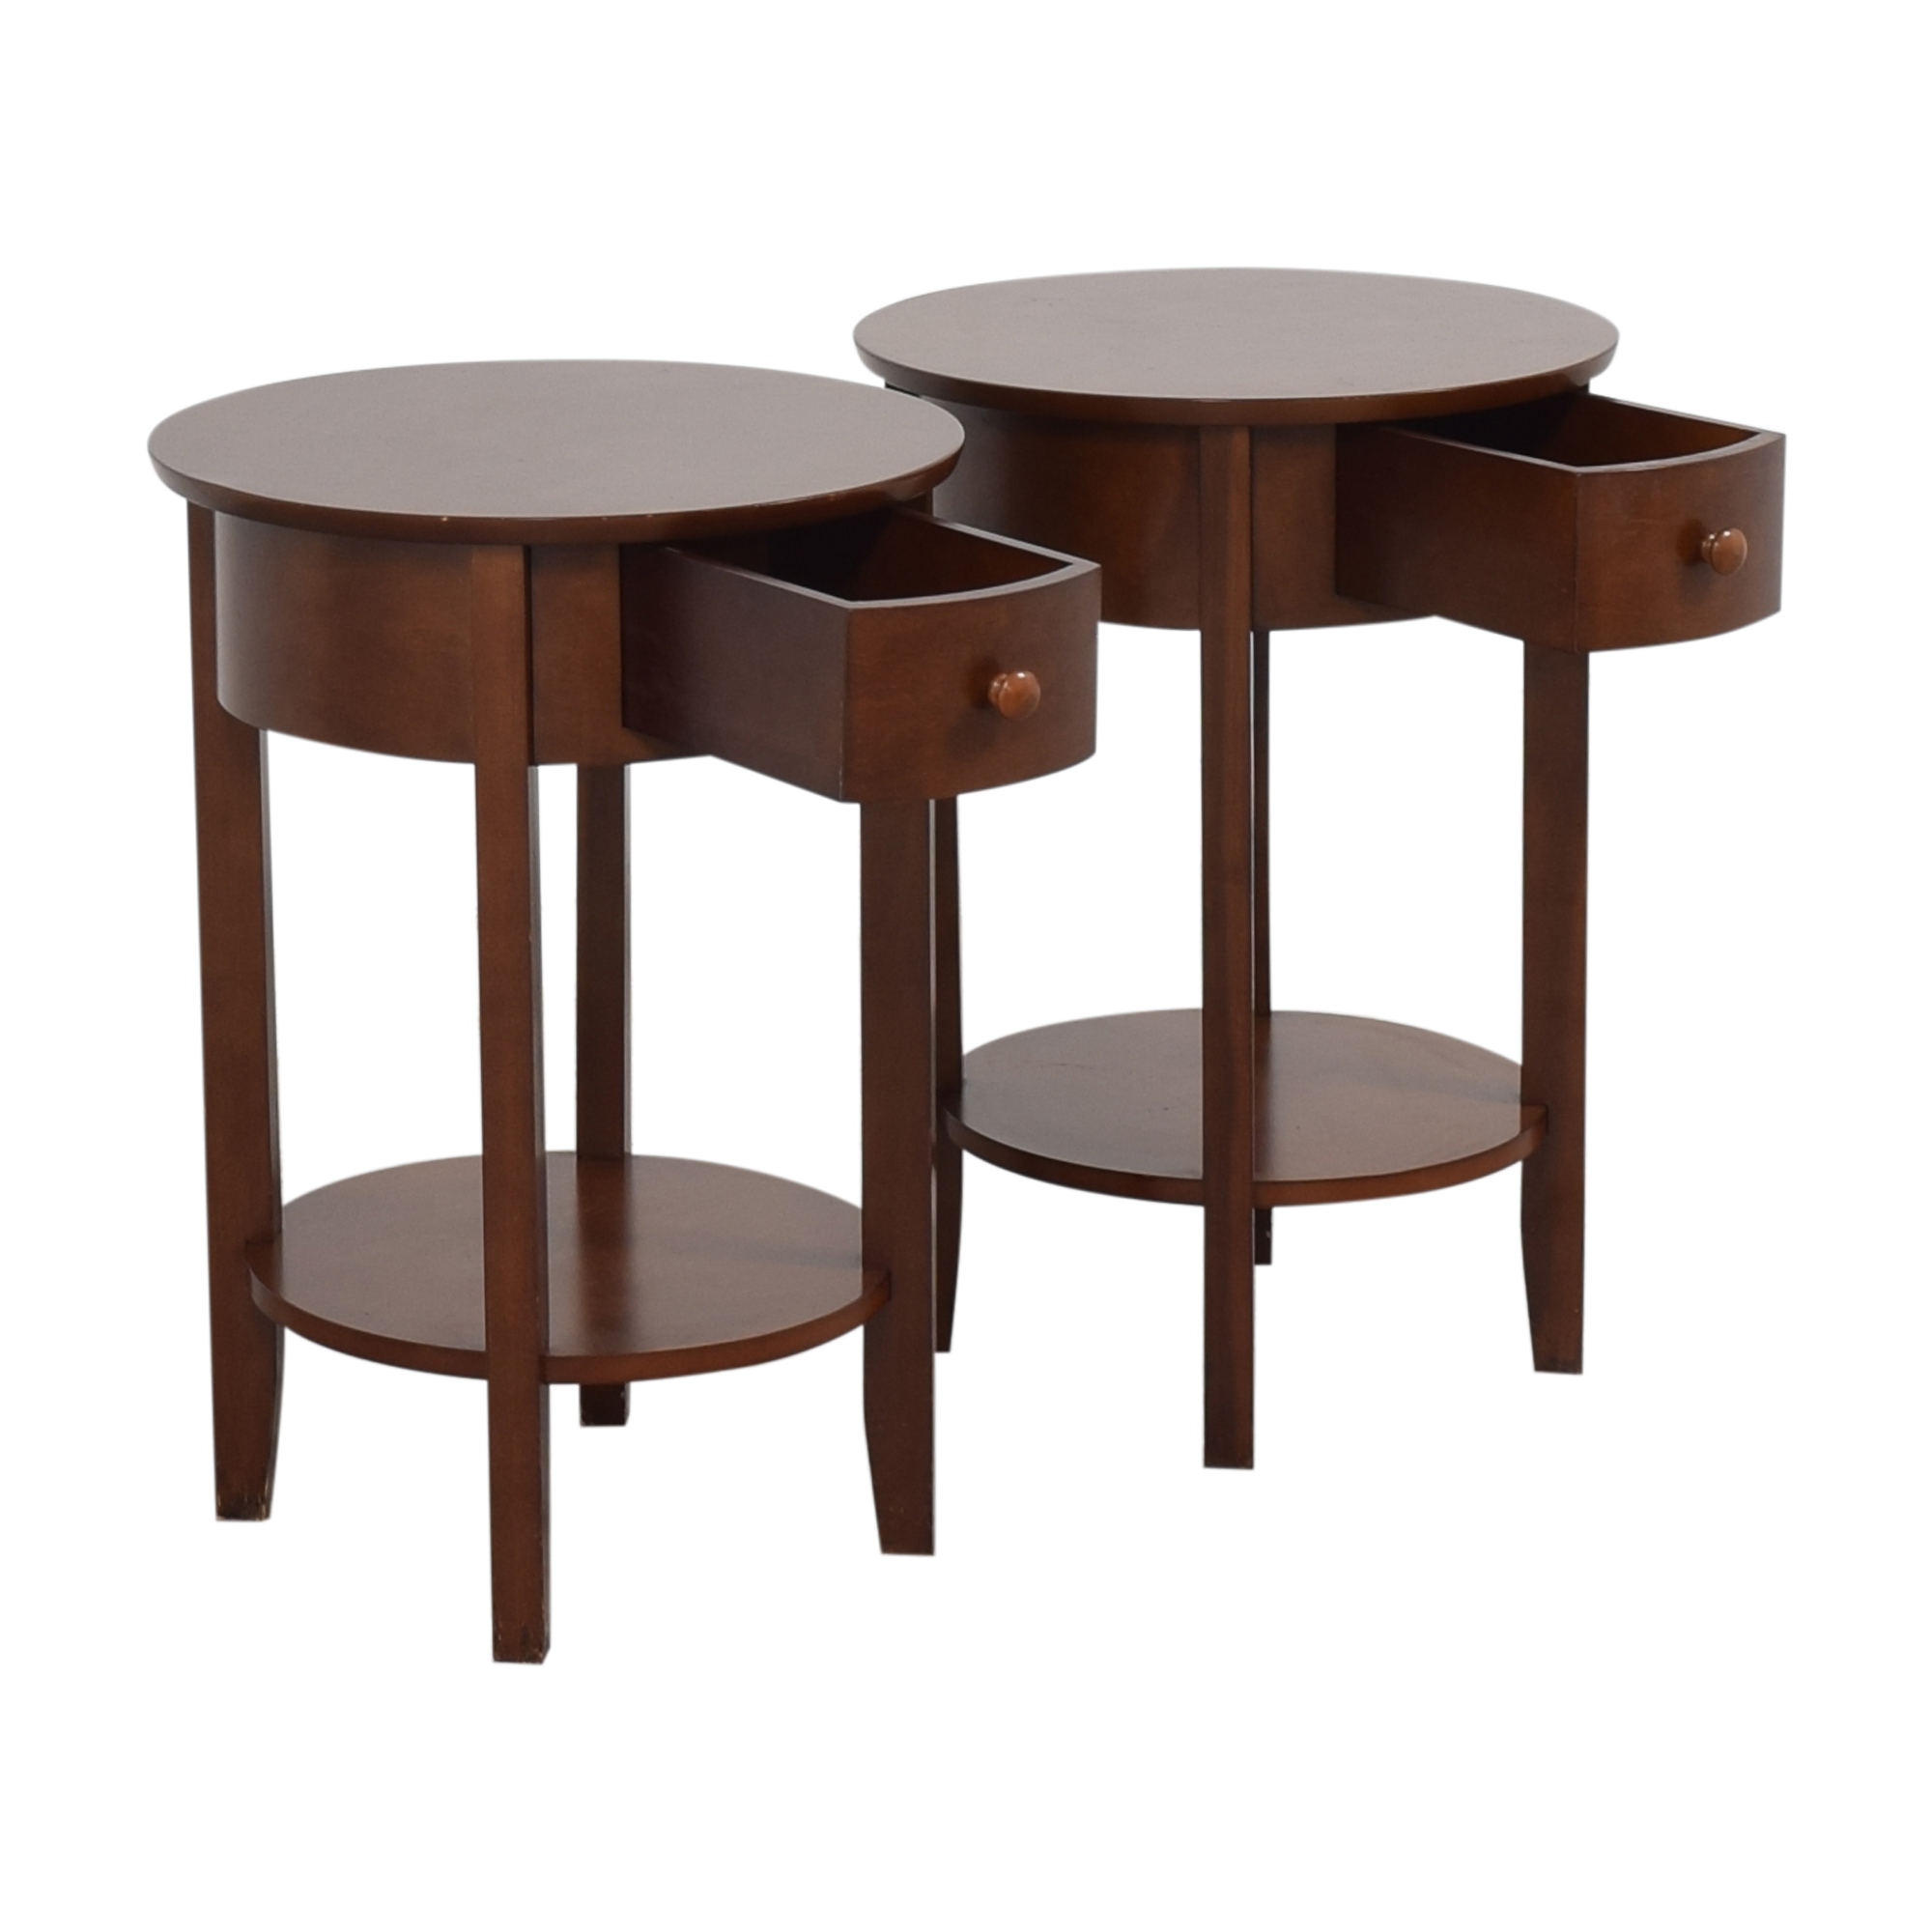 Pottery Barn Pottery Barn Round Top End Tables on sale